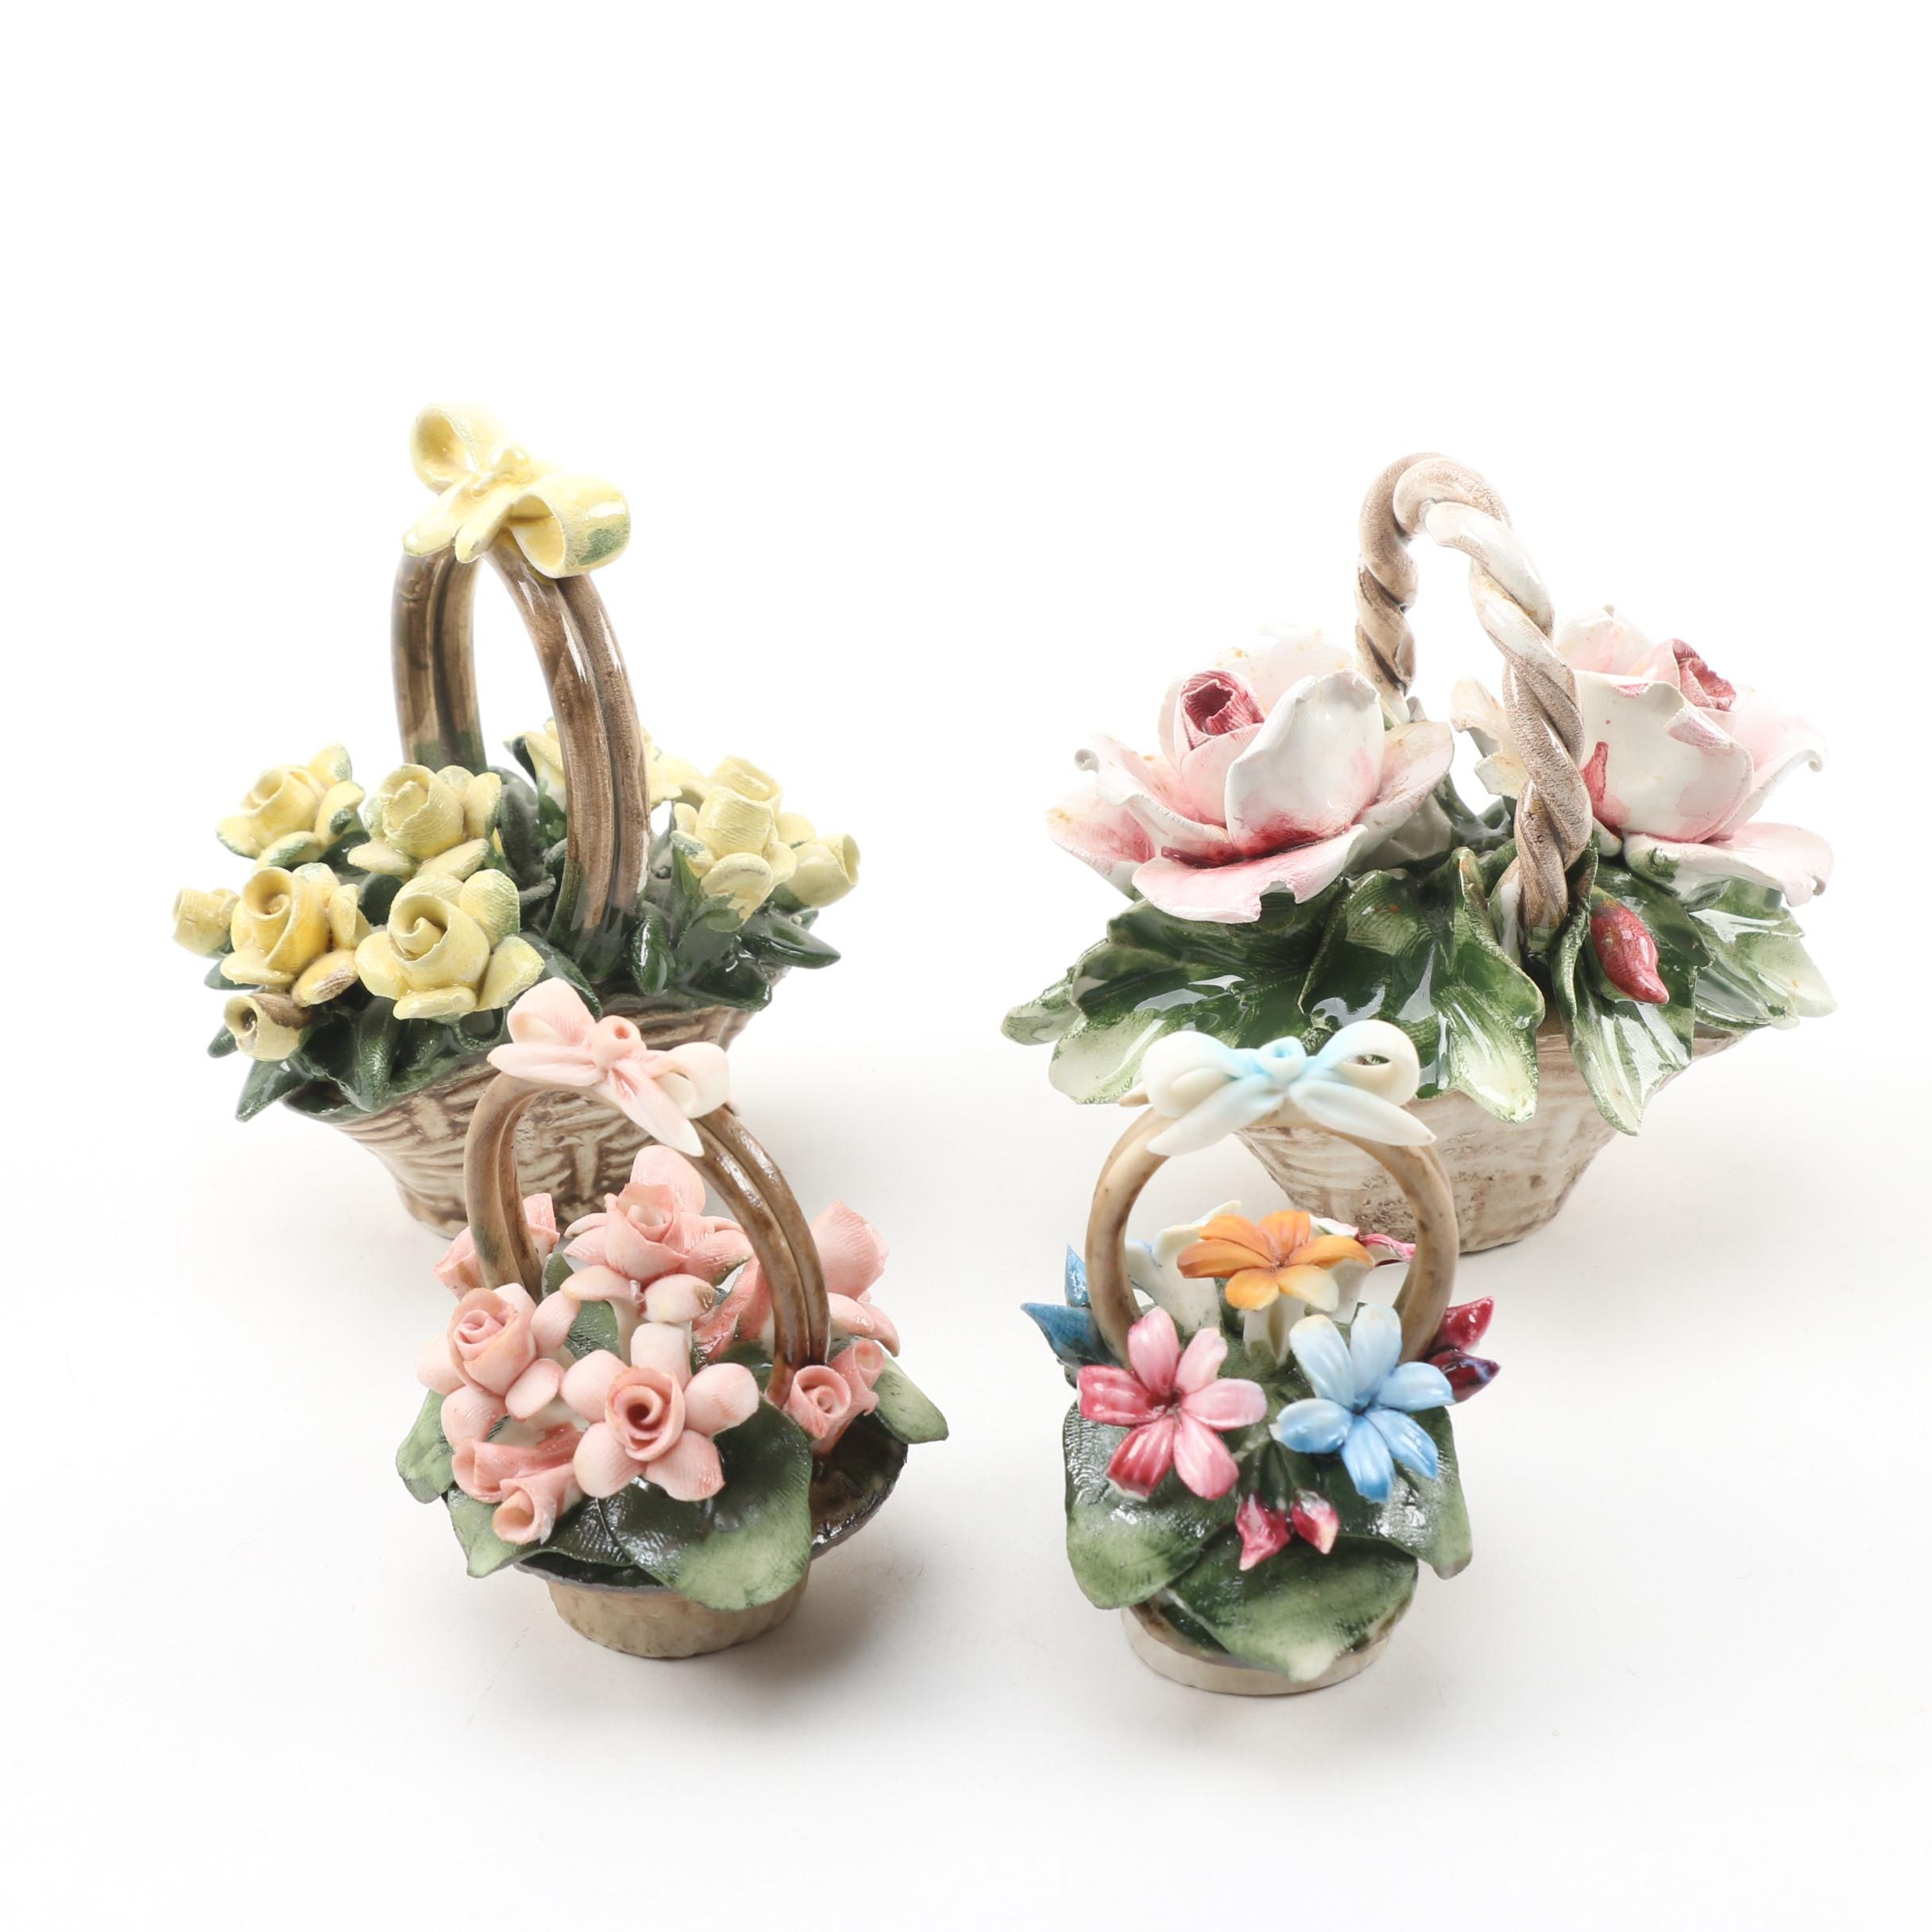 Capodimonte Hand-Painted Porcelain Flower Arrangement Figurines, 20th Century